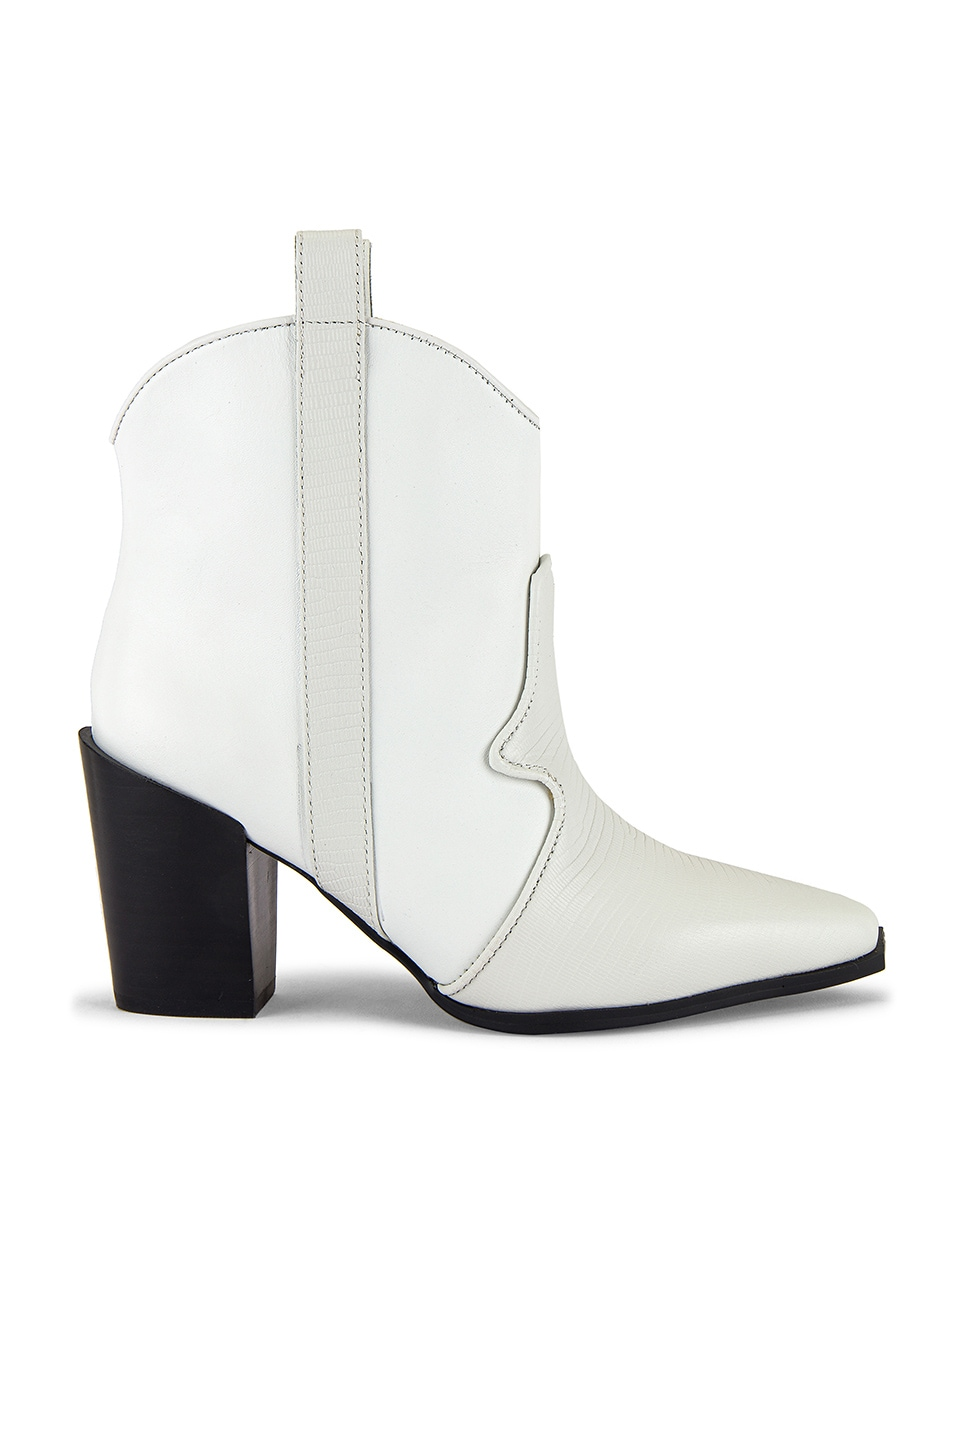 SENSO Quillan Bootie in Ice